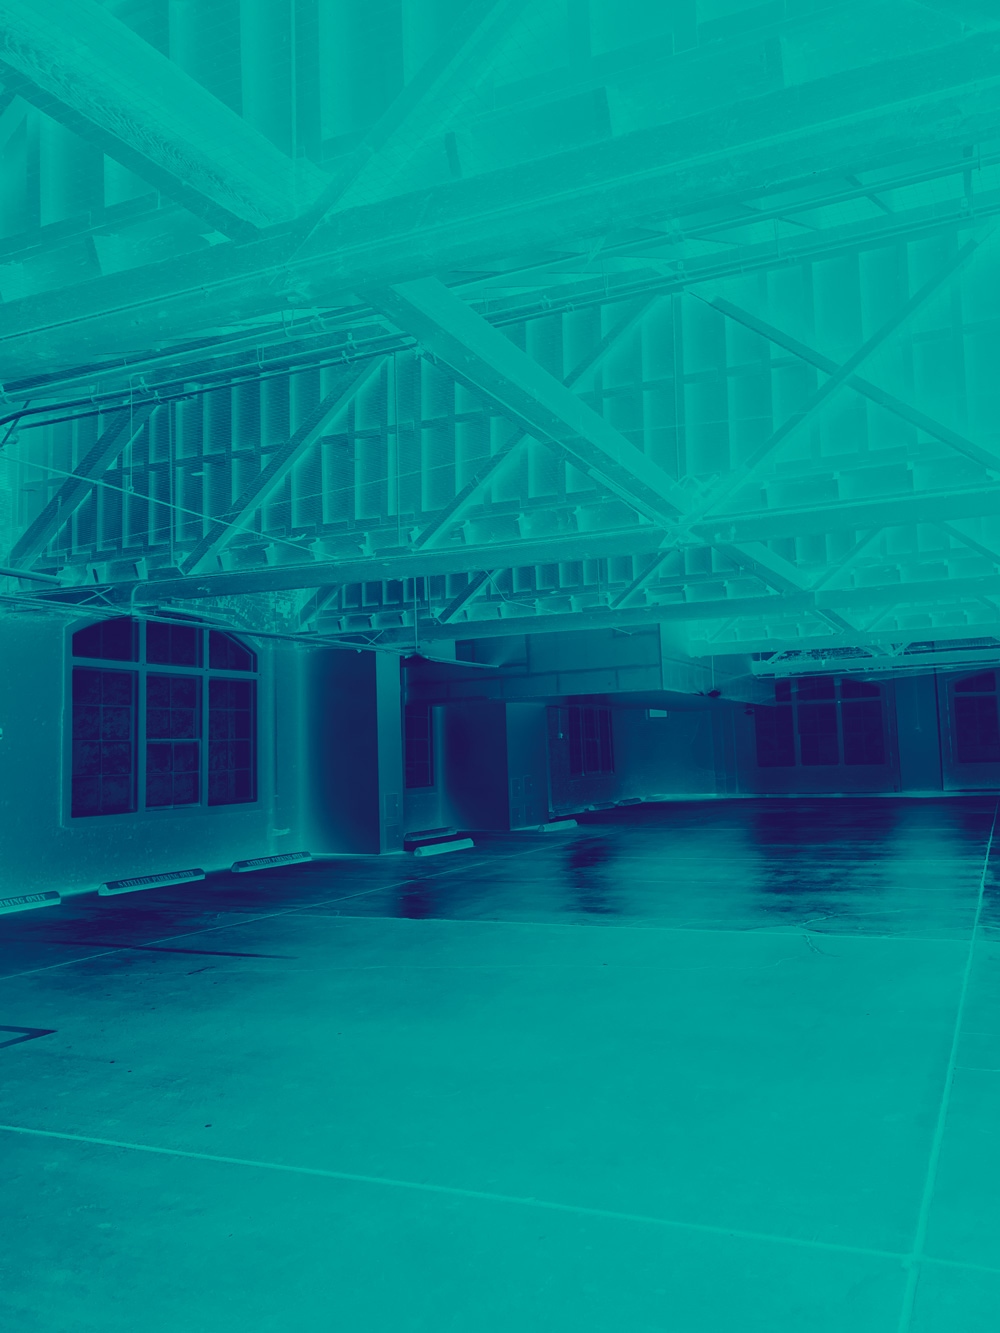 Image of an empty parking garage - there are a lot of steel beams overhead. The image is inverted and tinted in blue and purple